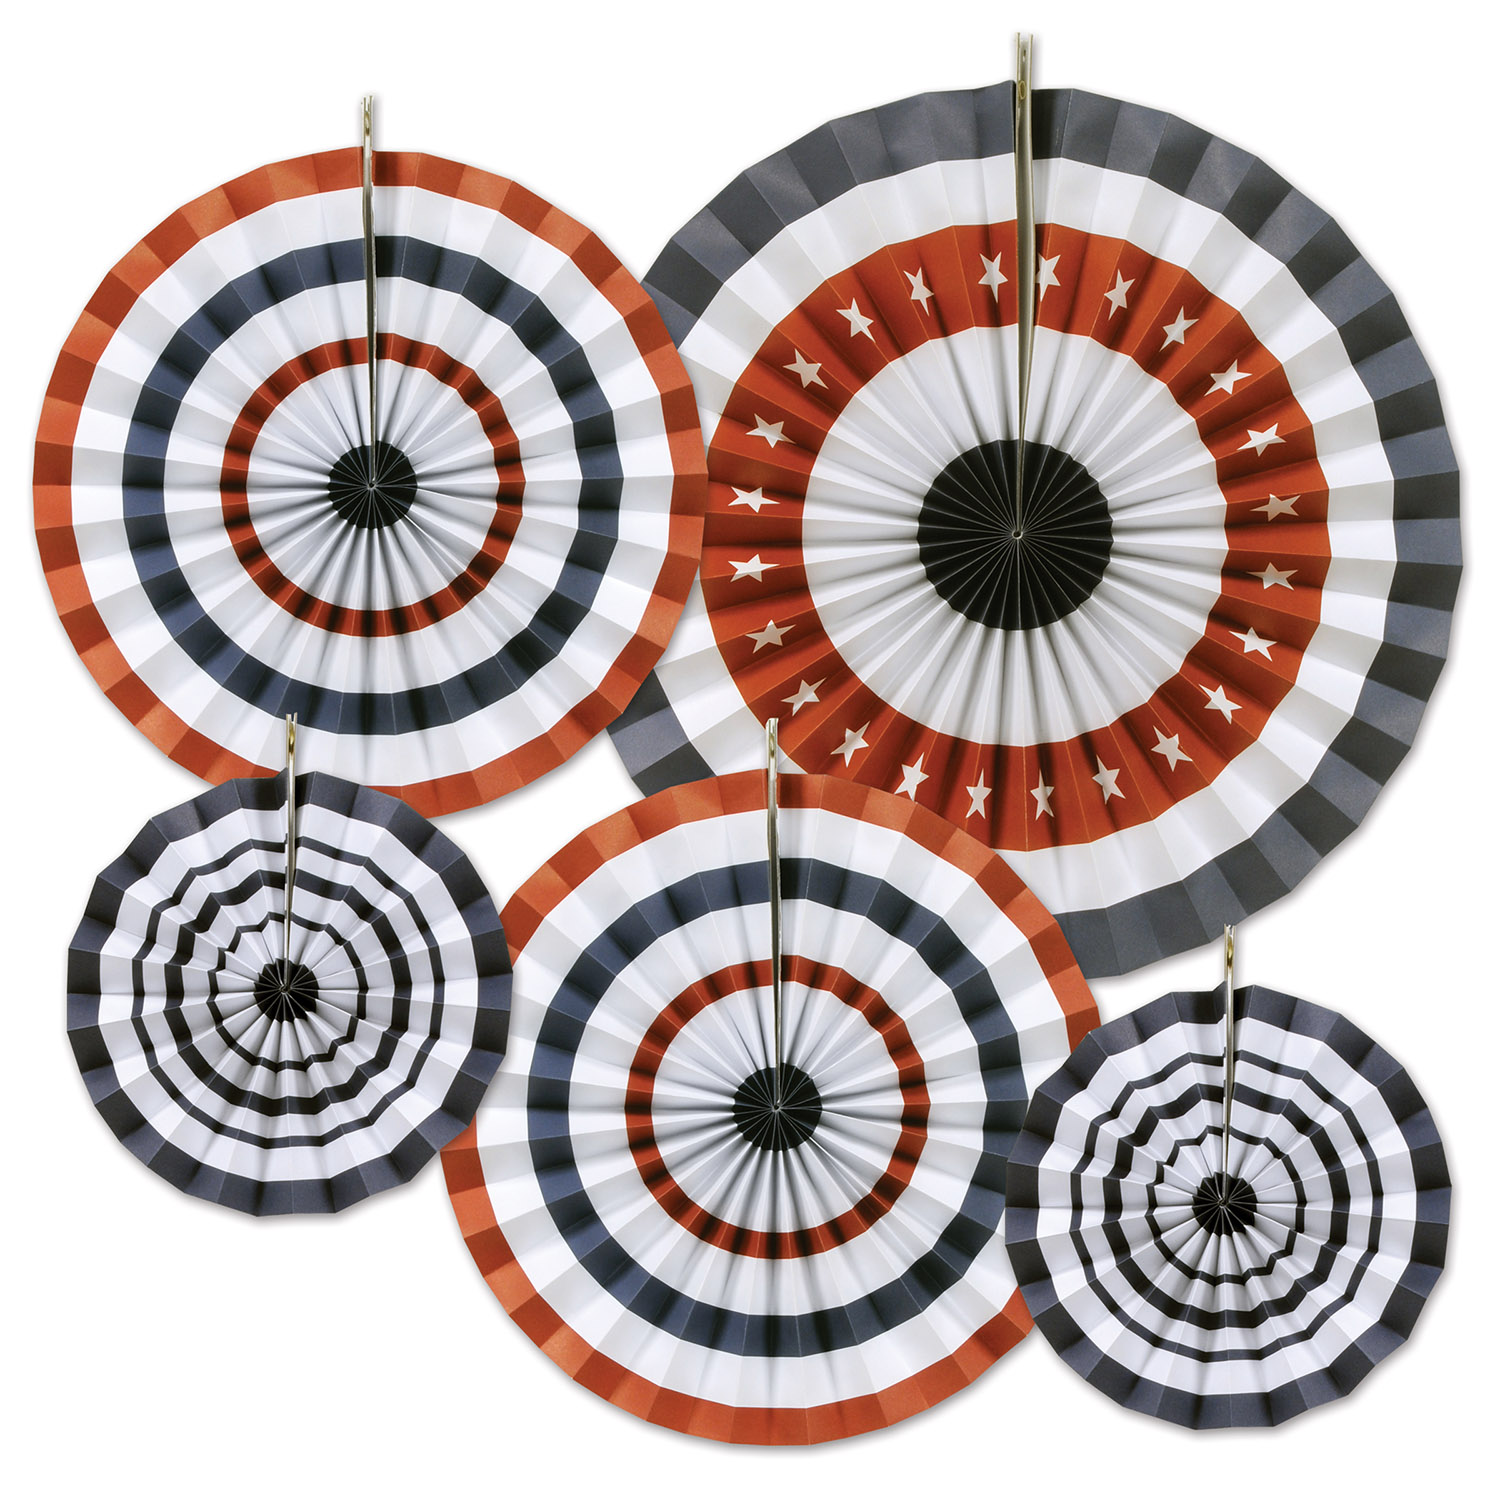 hanging red, white, and blue paper fans in multiple sizes